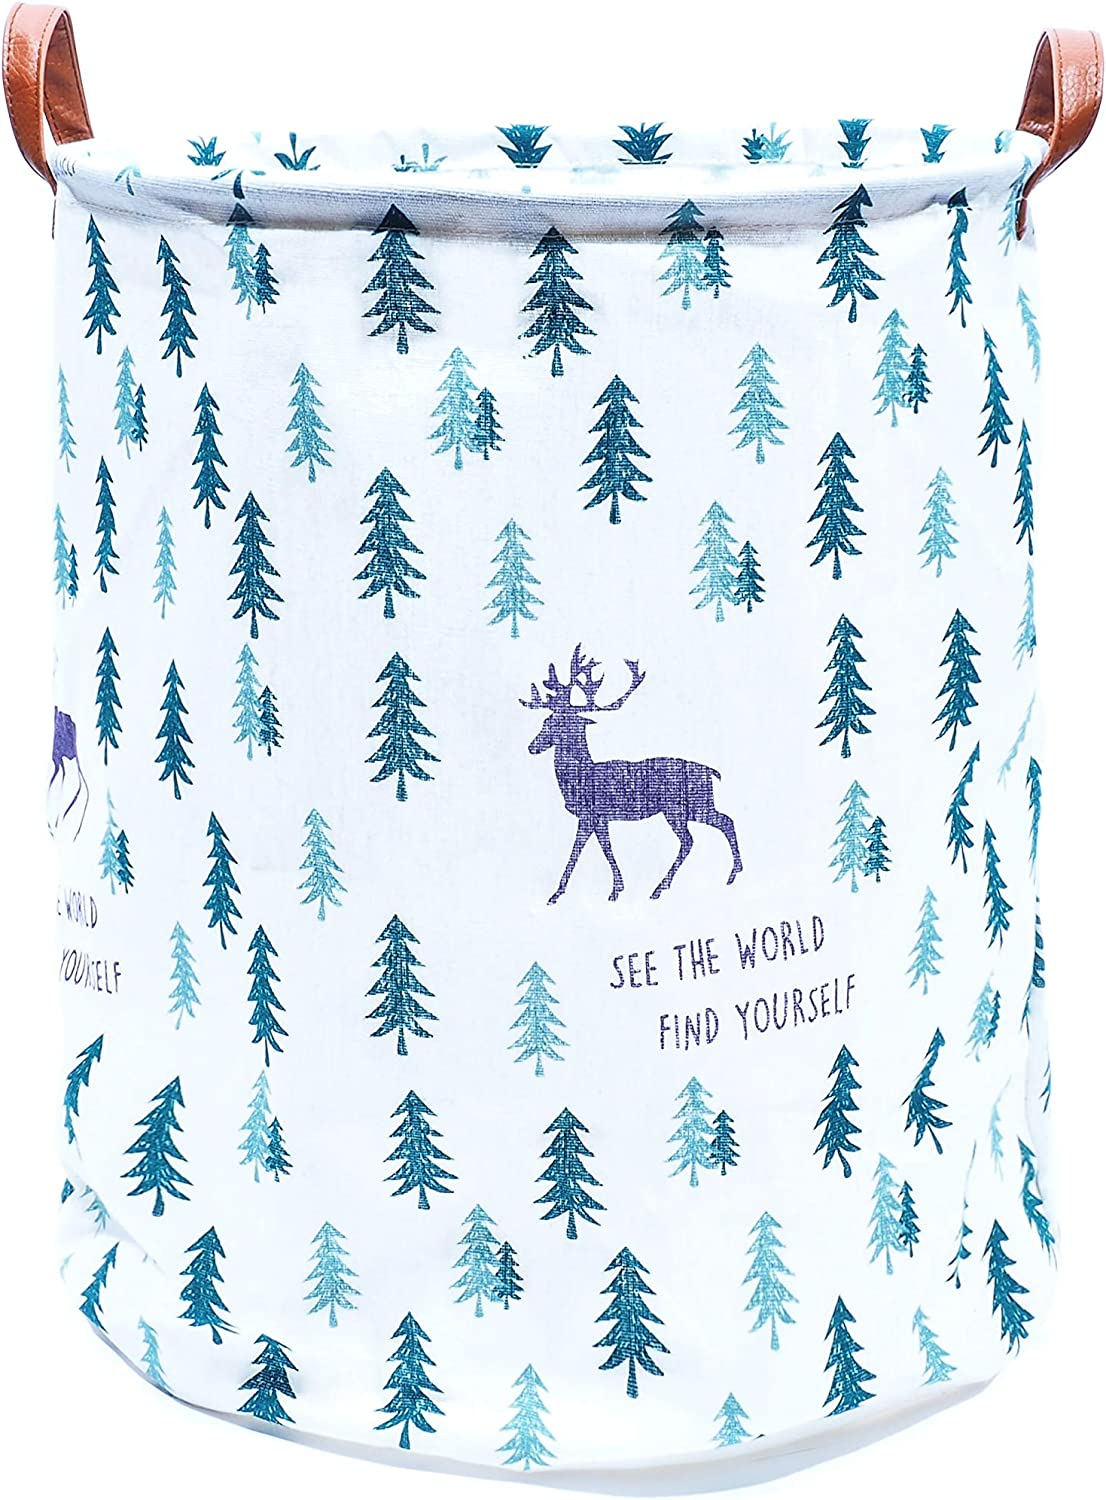 owhizz Reindeer Print Laundry Basket with Leather Handles Waterproof Canvas Large Storage Bin Foldable Organizer (15 Inch, Reindeer and Pine Tree)